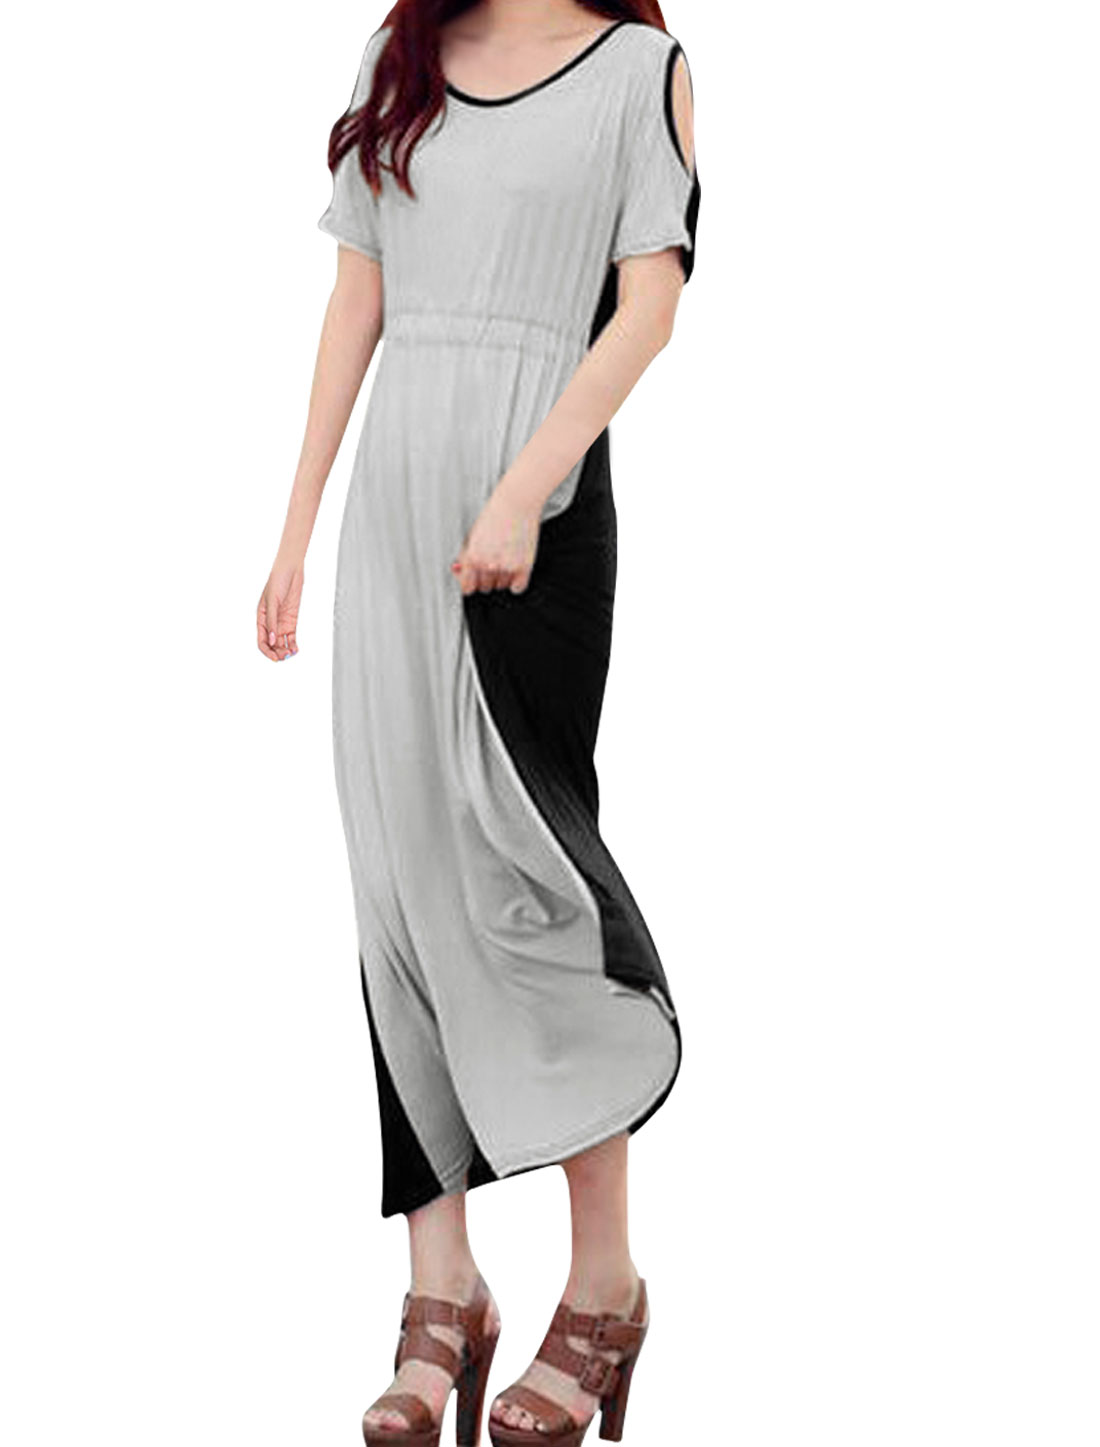 Ladies Light Gray Black Cut Out Sleeves Drawstring Waist Casual Pullover Dress S